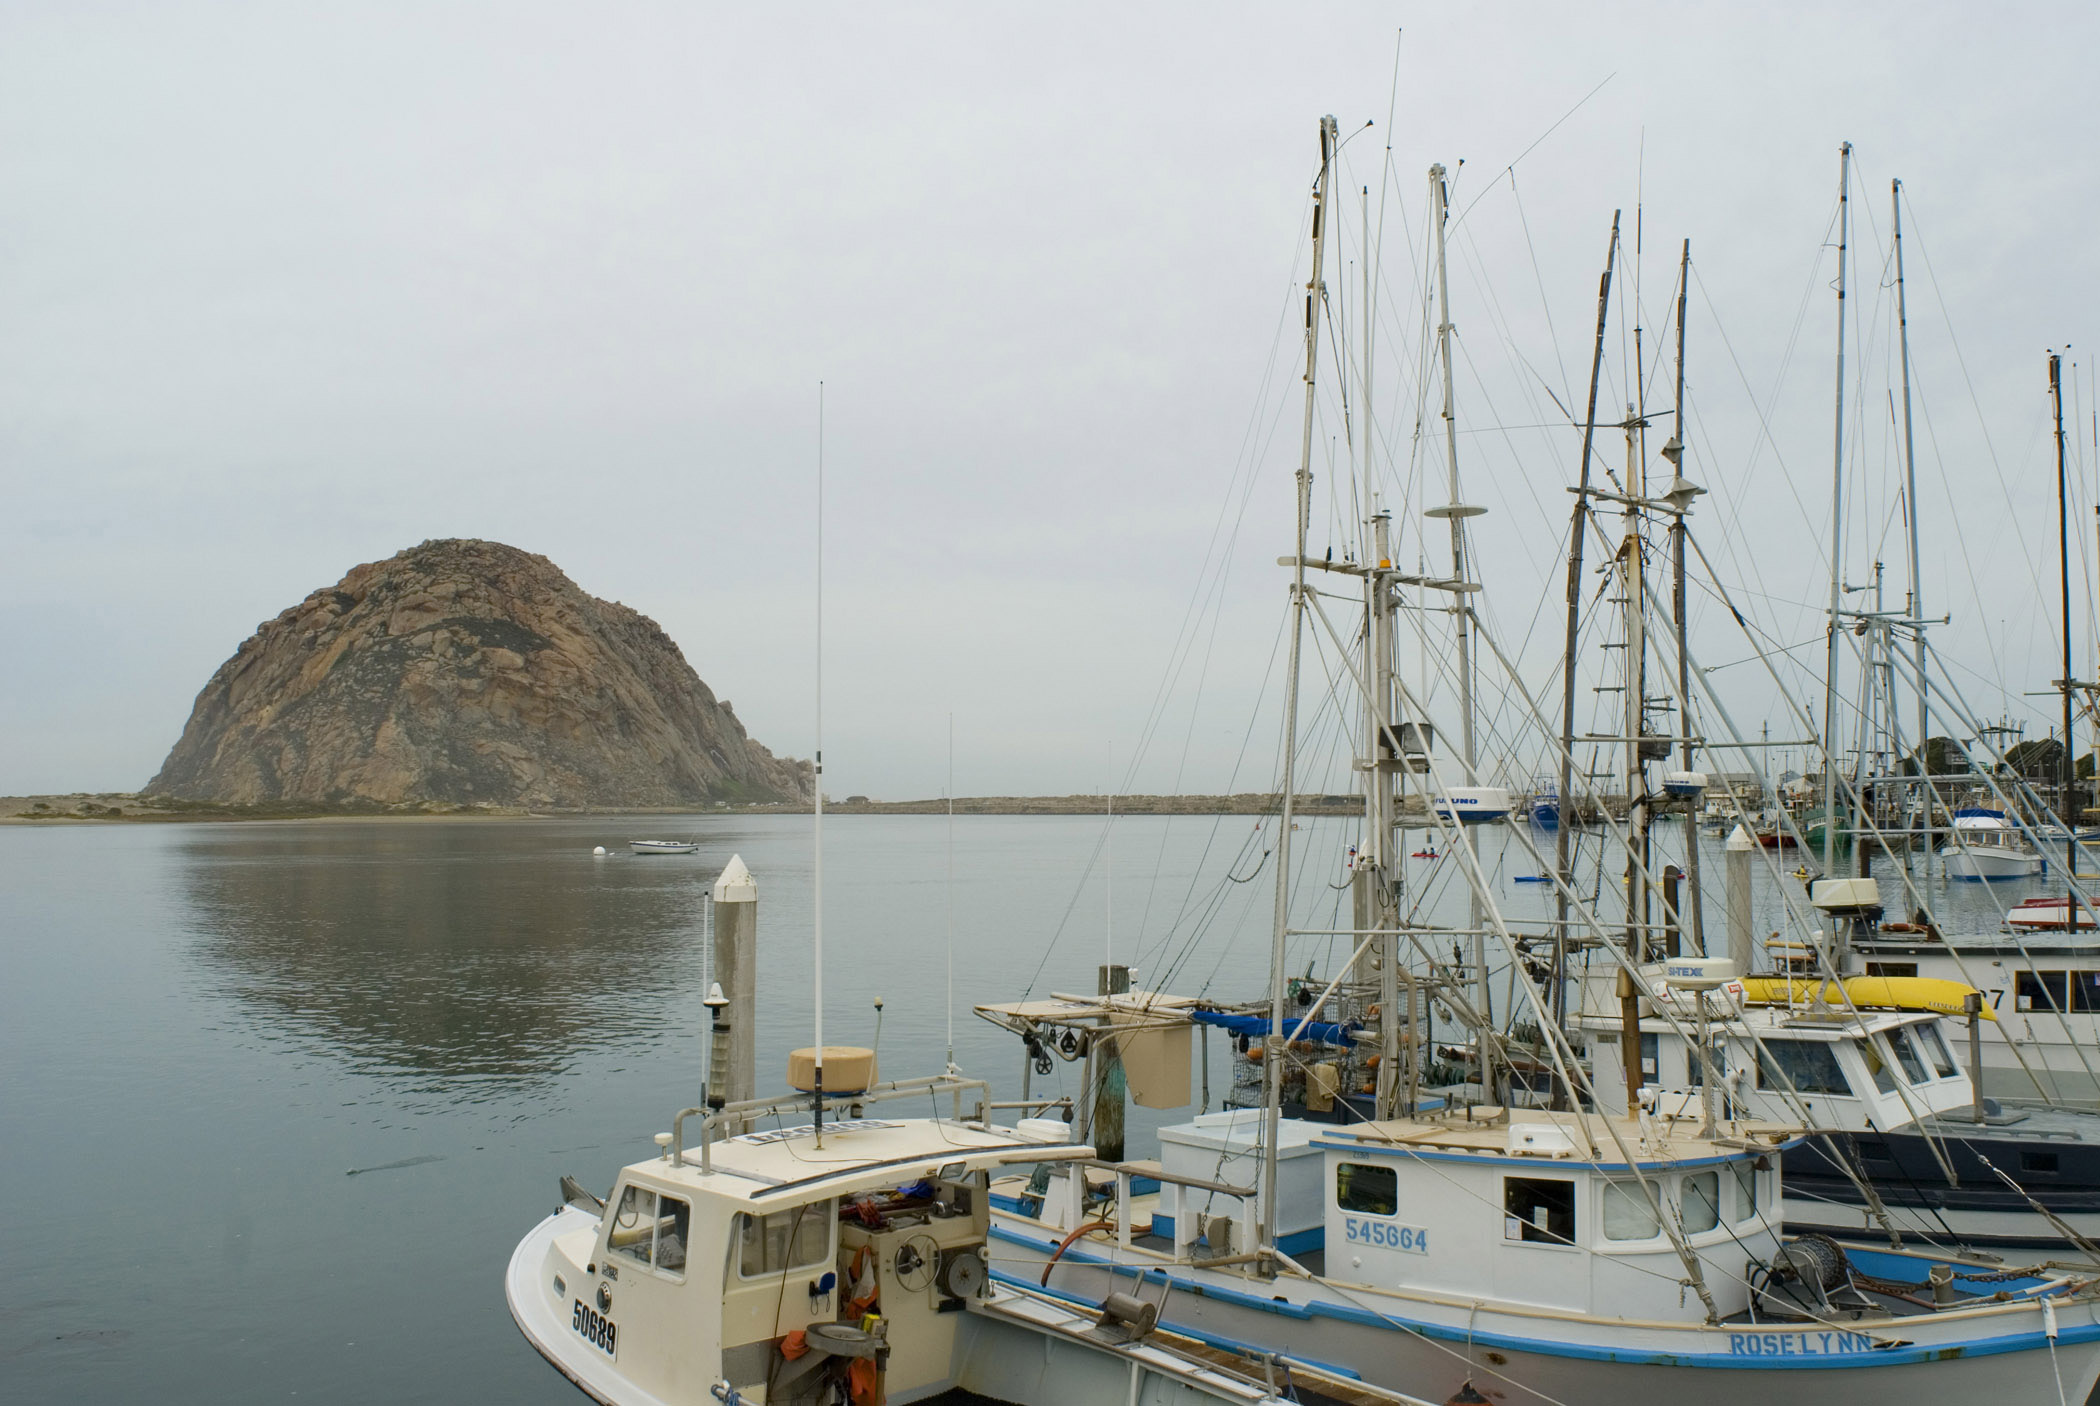 Boats at Morro Bay Dock and Famous Morro Rock Afar. Against an overcast grey sky background.